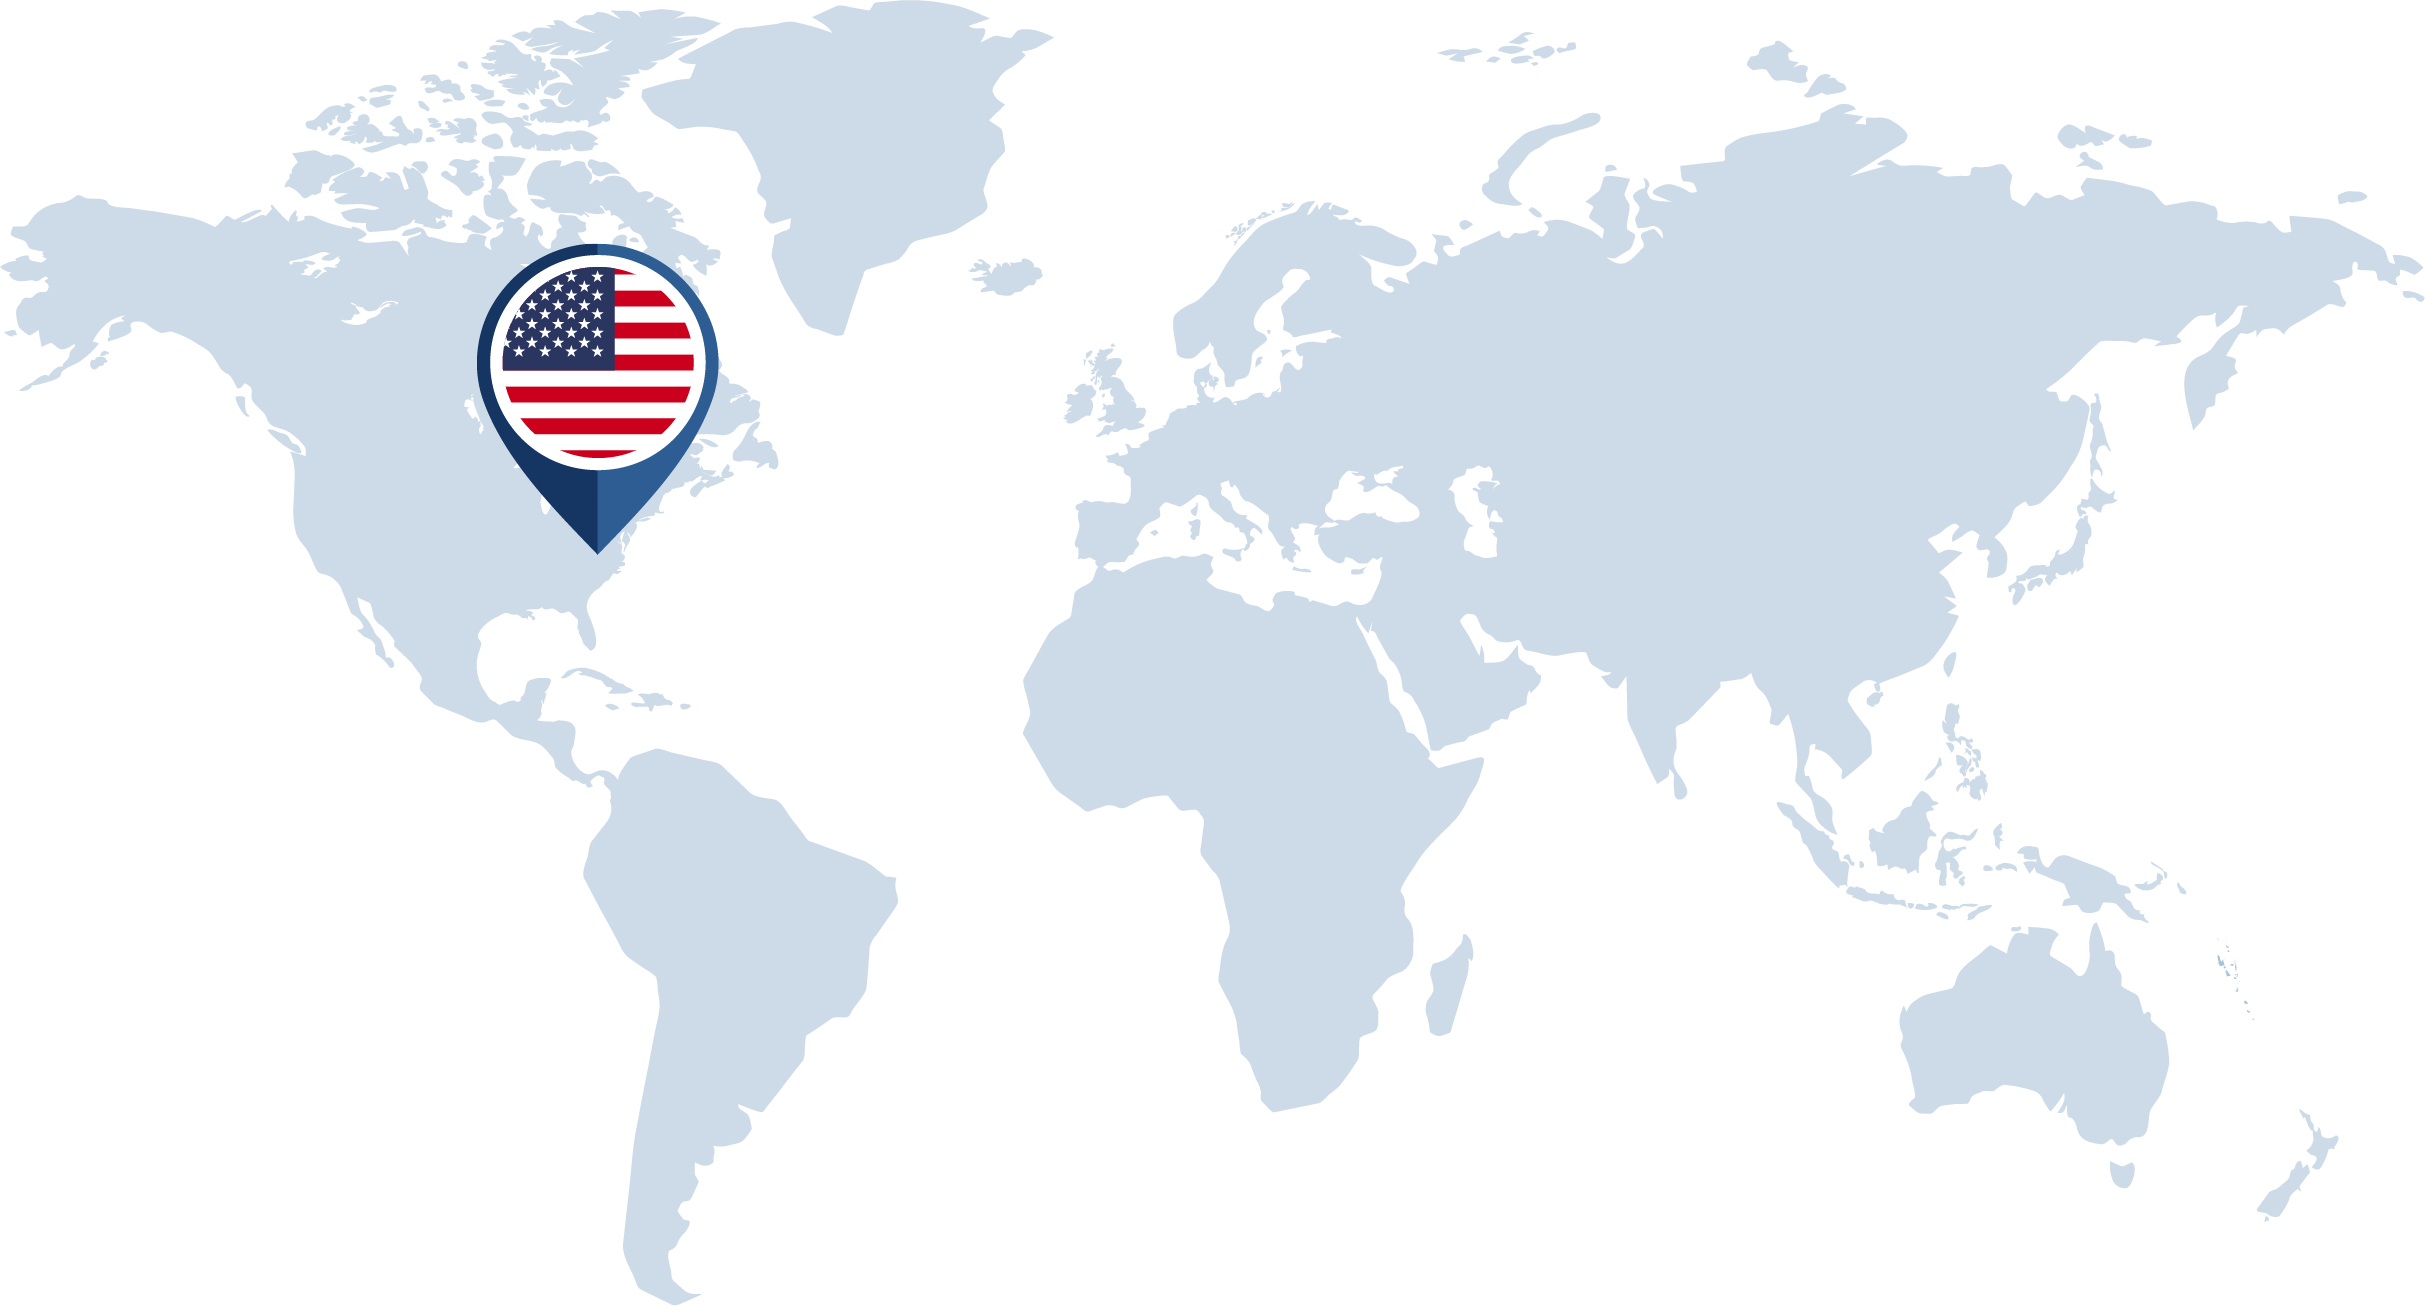 https://www.bluemina.com/wp-content/uploads/2020/02/usa-map-and-flag-1-1.png